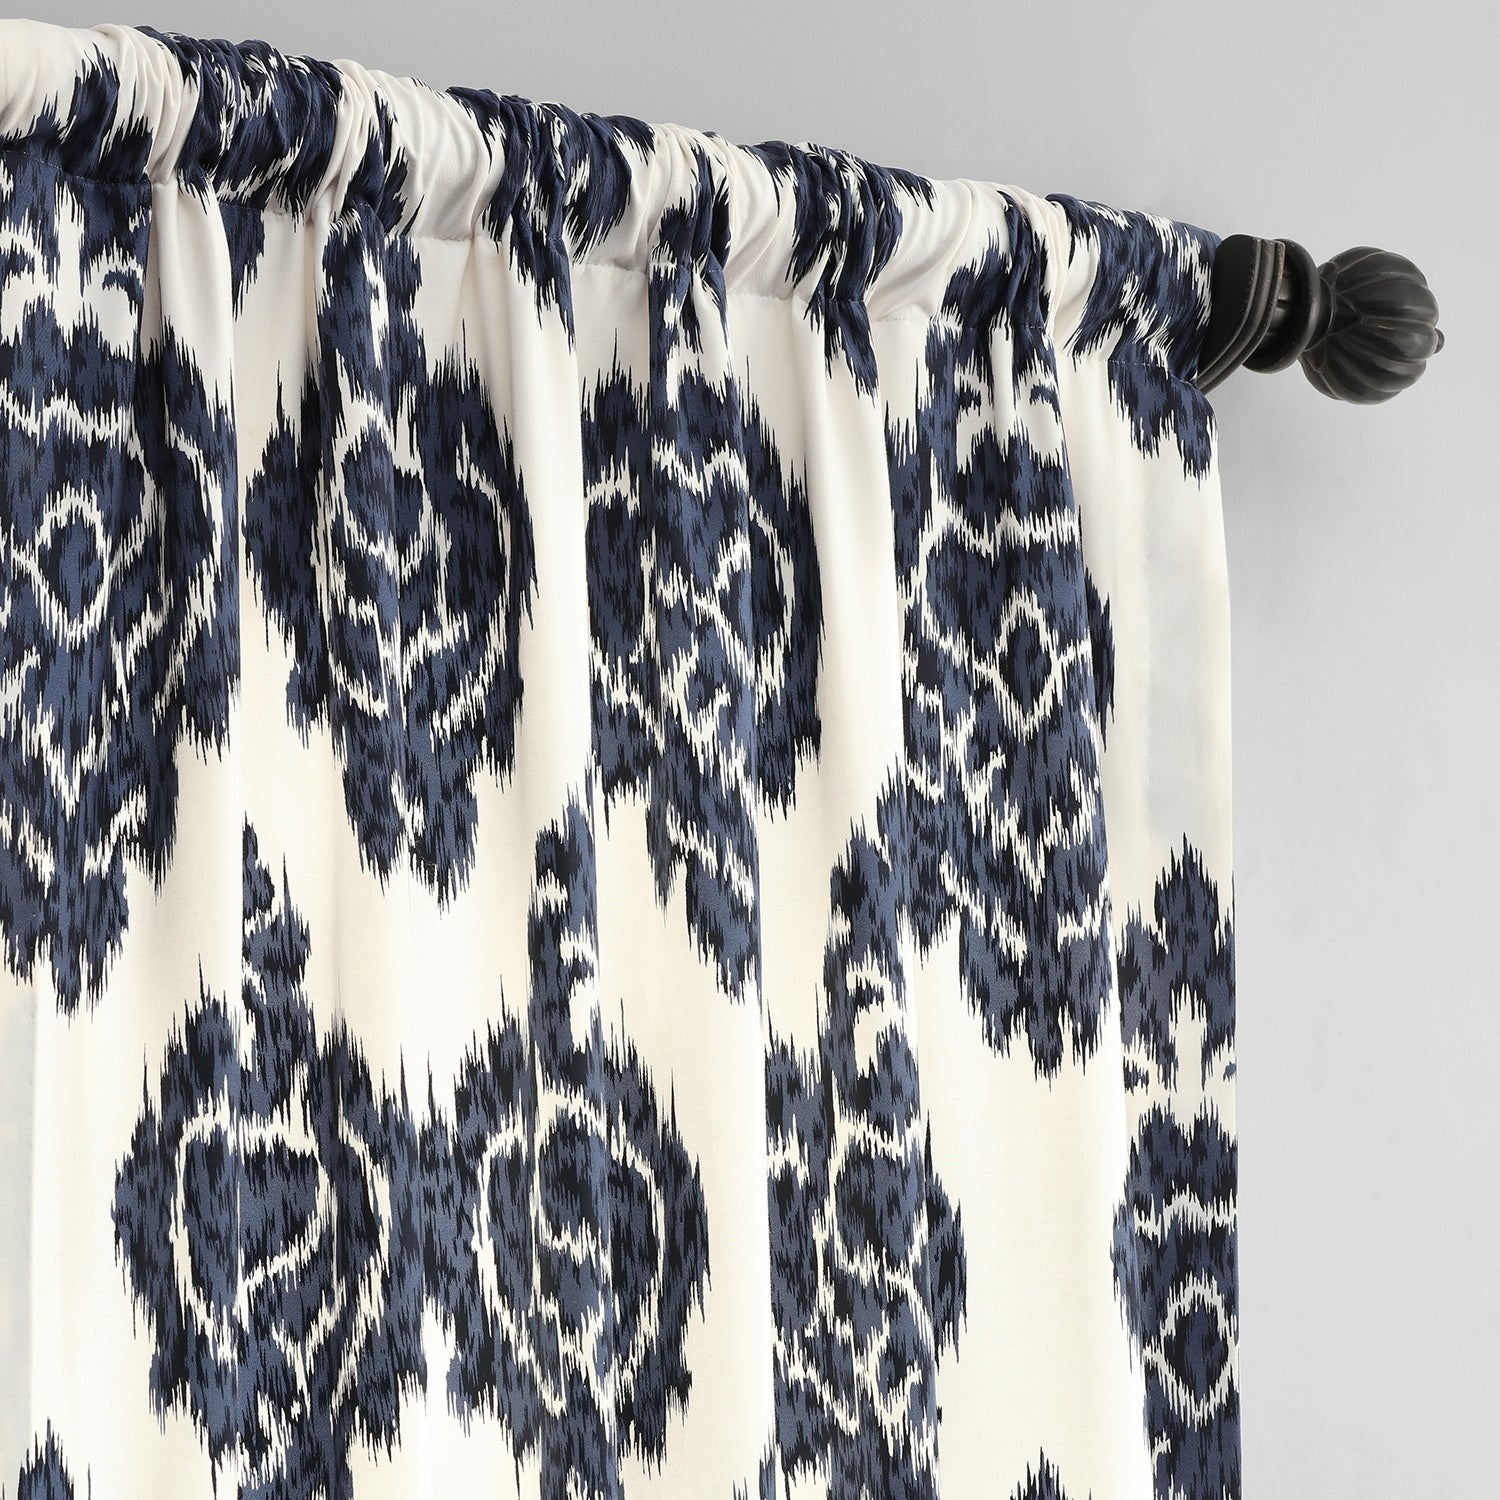 Exclusive Fabrics Ikat Blue Printed Cotton Curtain Panel Within Ikat Blue Printed Cotton Curtain Panels (View 14 of 20)